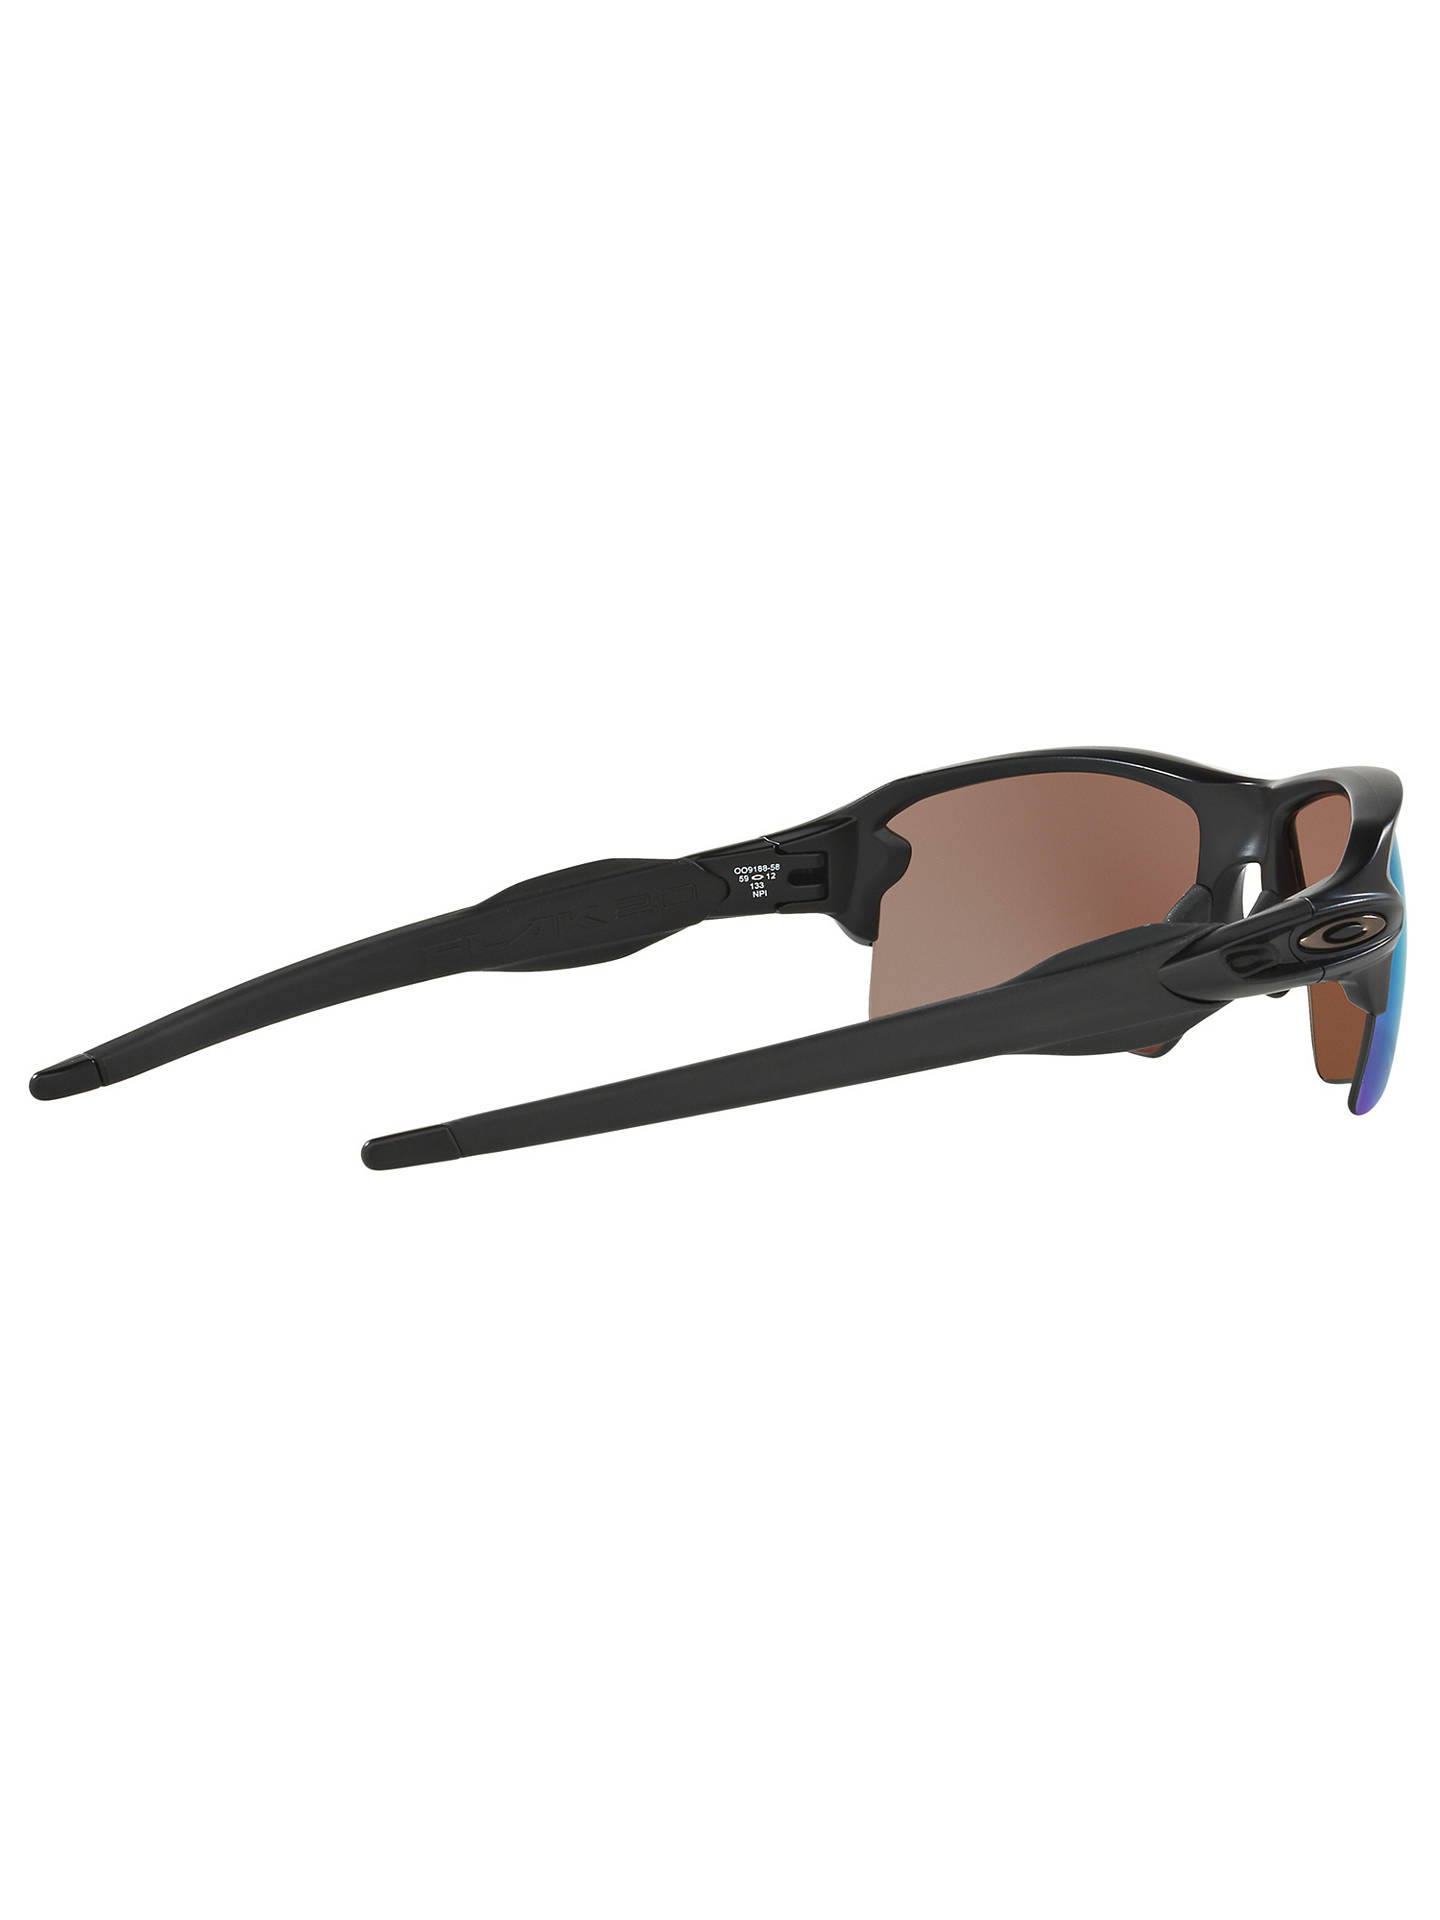 f2a879a8122 ... BuyOakley OO9188 Men s Flak 2.0 XL Prizm™ Polarised Rectangular  Sunglasses